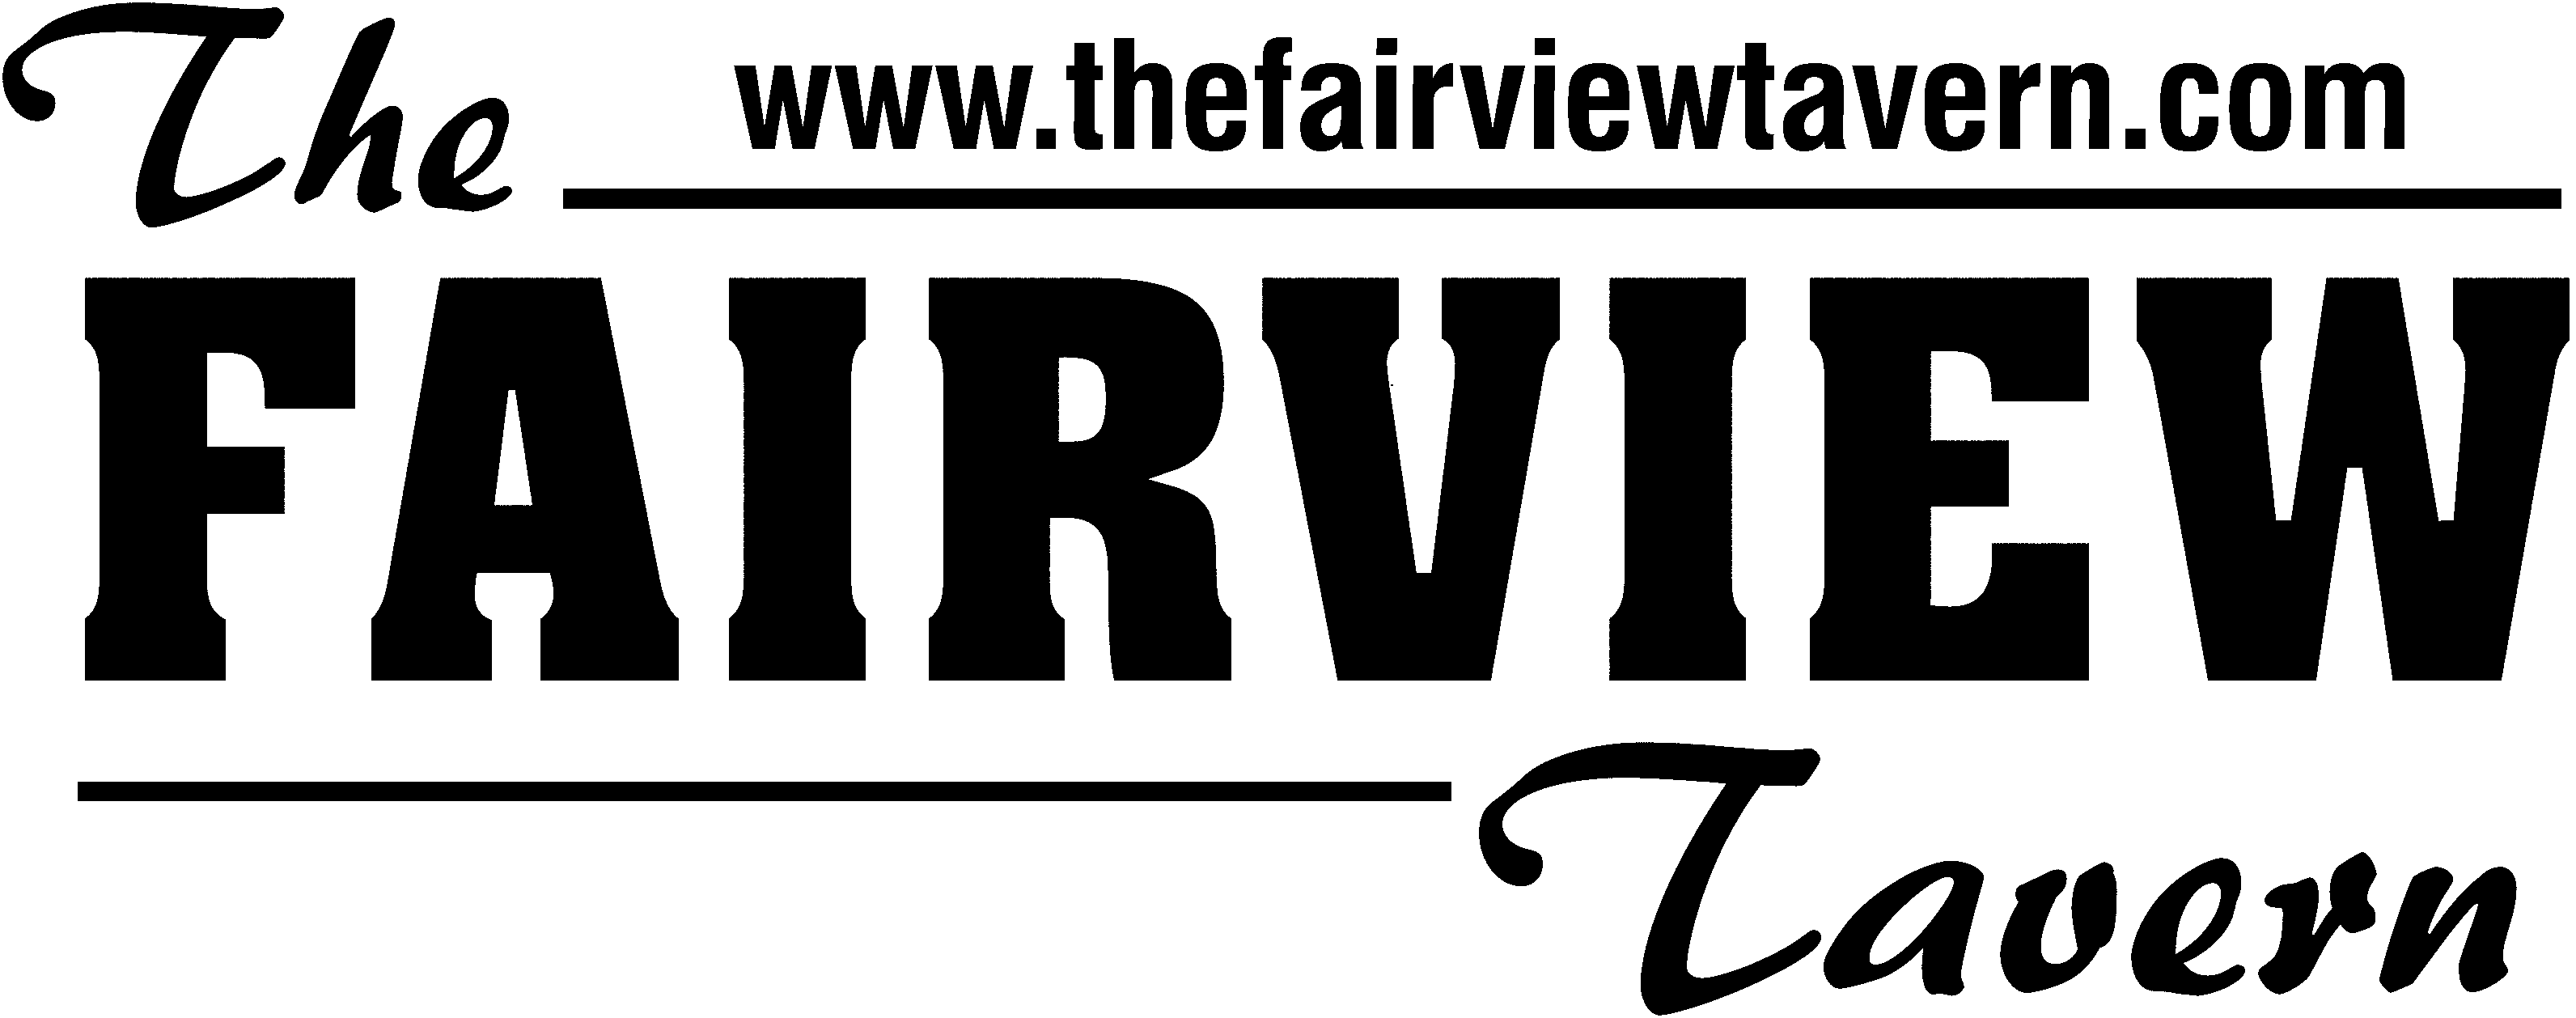 The Fairview Tavern